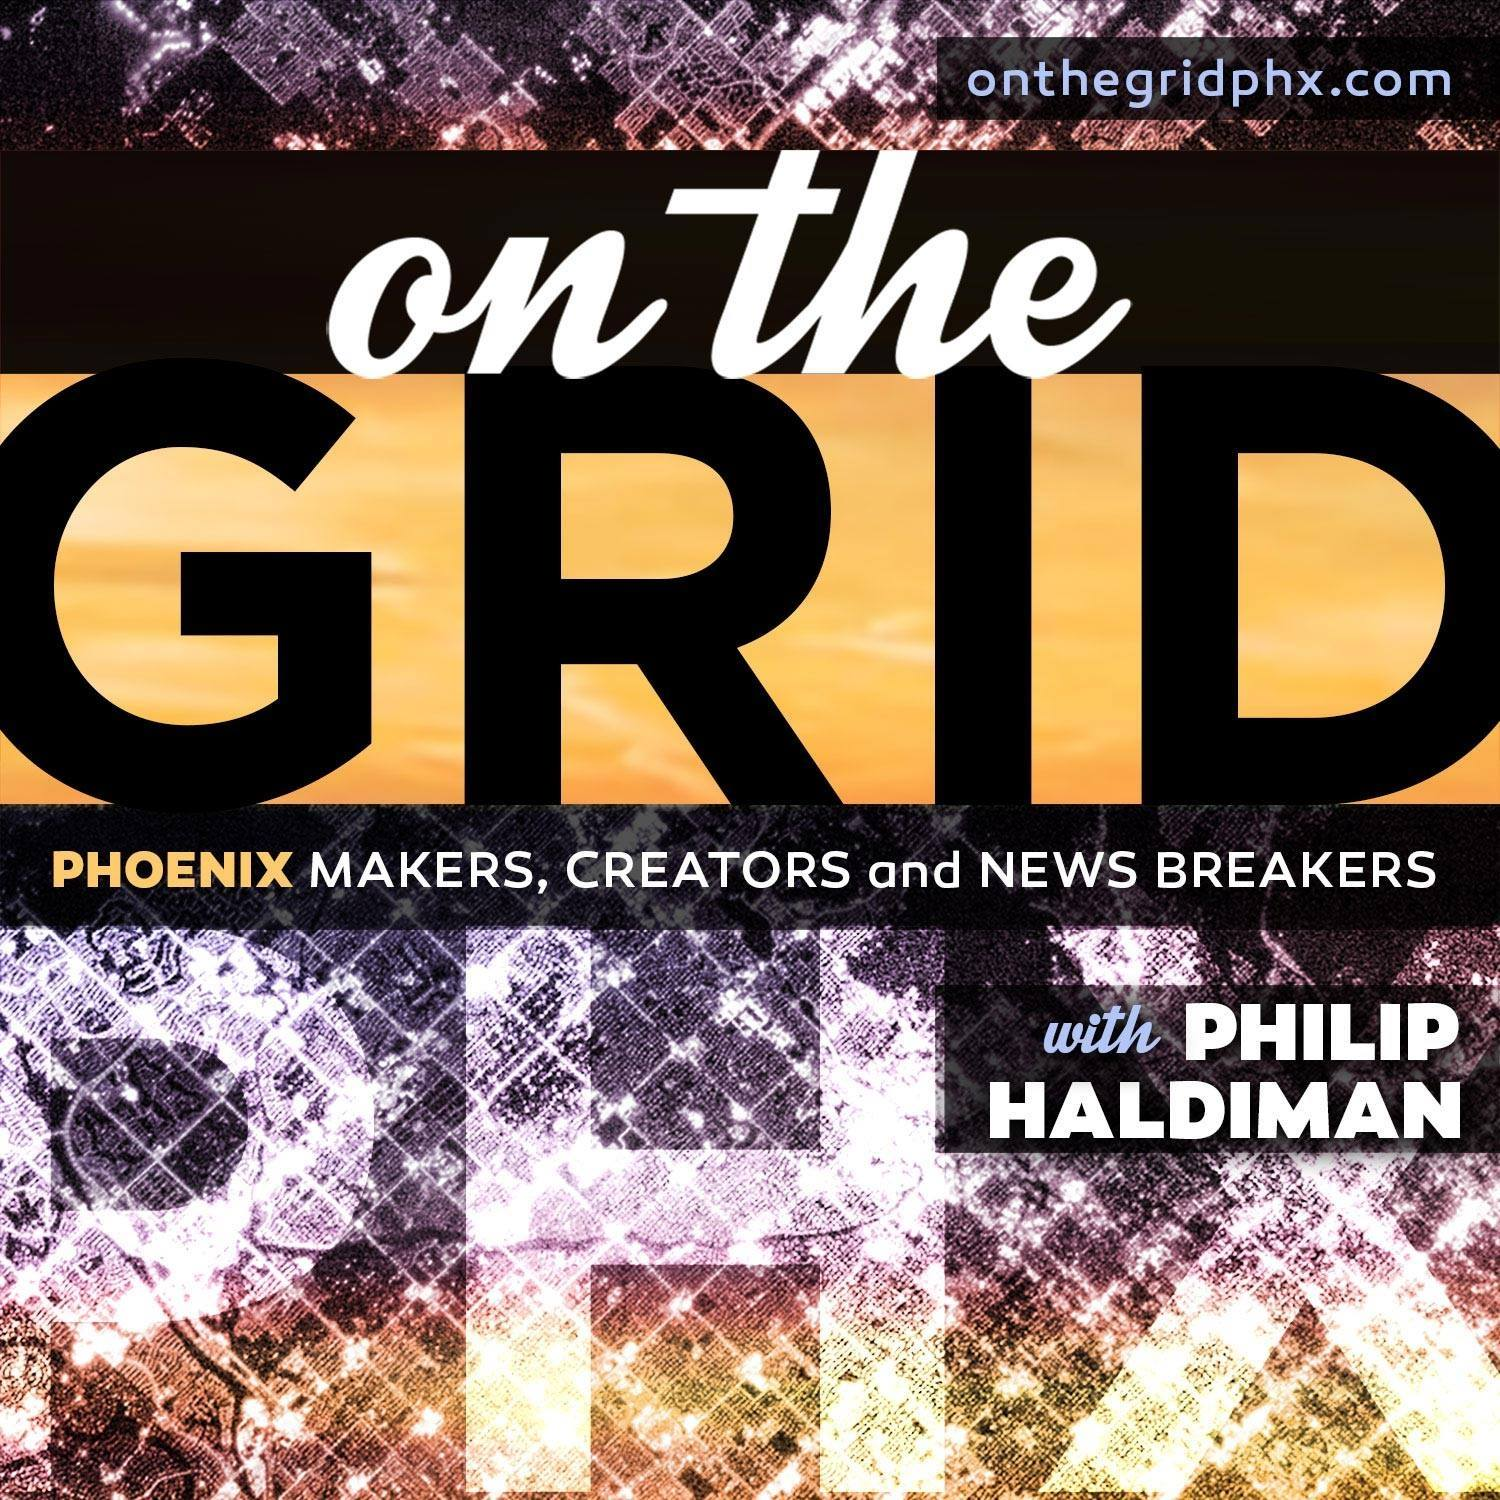 On the Grid - On the Grid is a show about the makers and creators that are helping to make Phoenix the thriving cultural metropolis we know it can be.Hosted by Philip Haldiman and Produced by Chris Ayers.OntheGridPHX.com